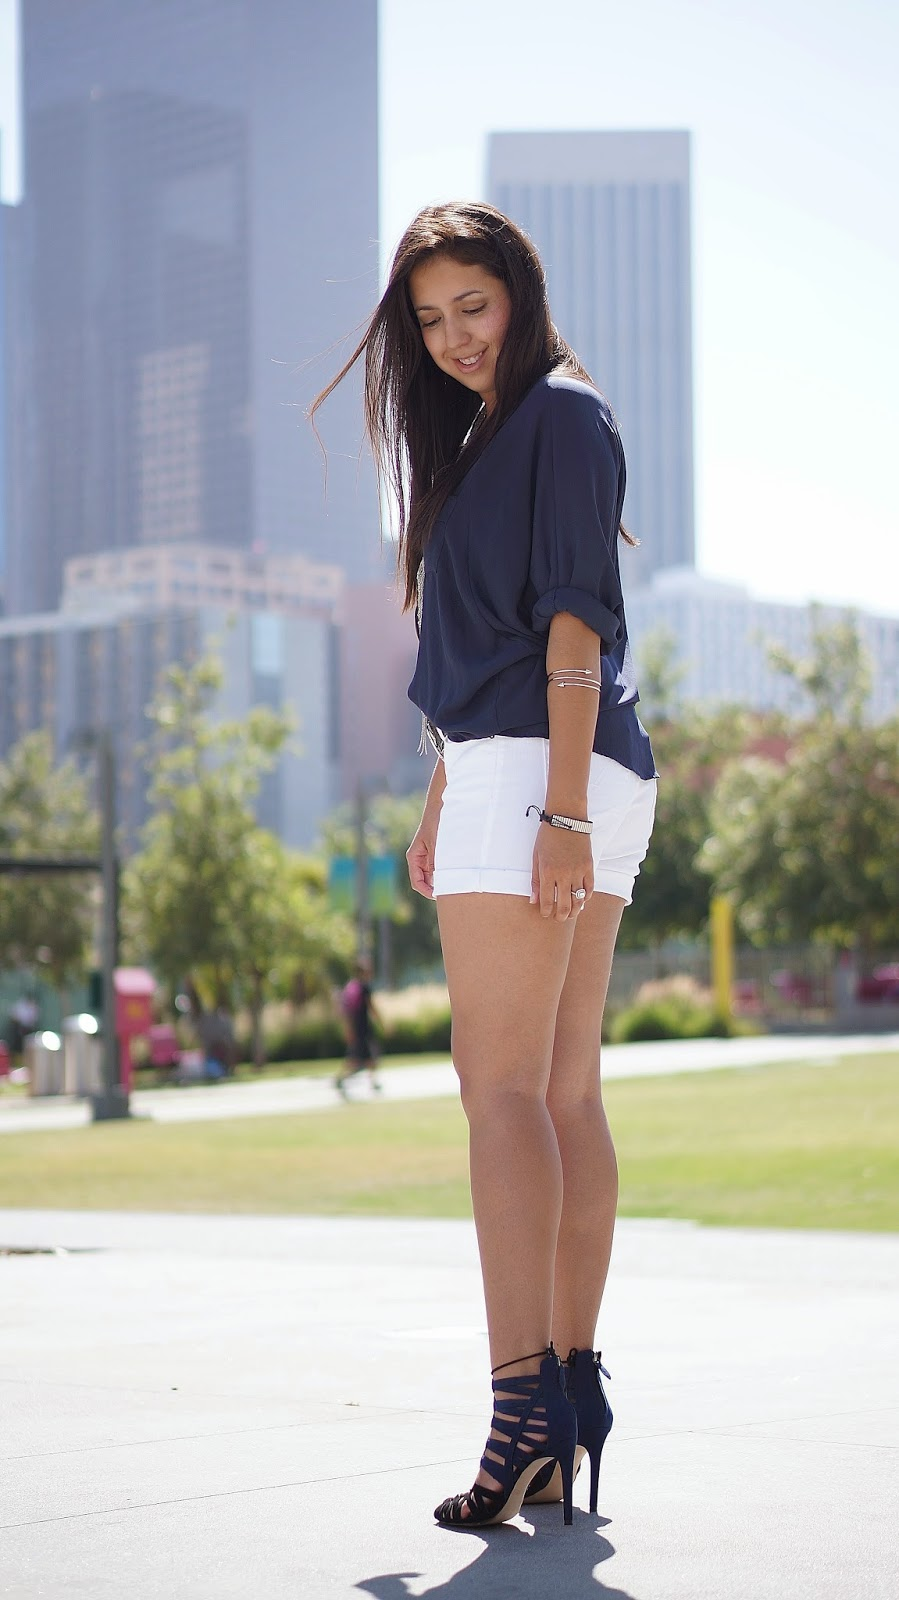 Levi's Roll Cuff White Shorts, Summer Fashion, Fashion Blogger, Zara Heels, Casual Look, Downtown LA